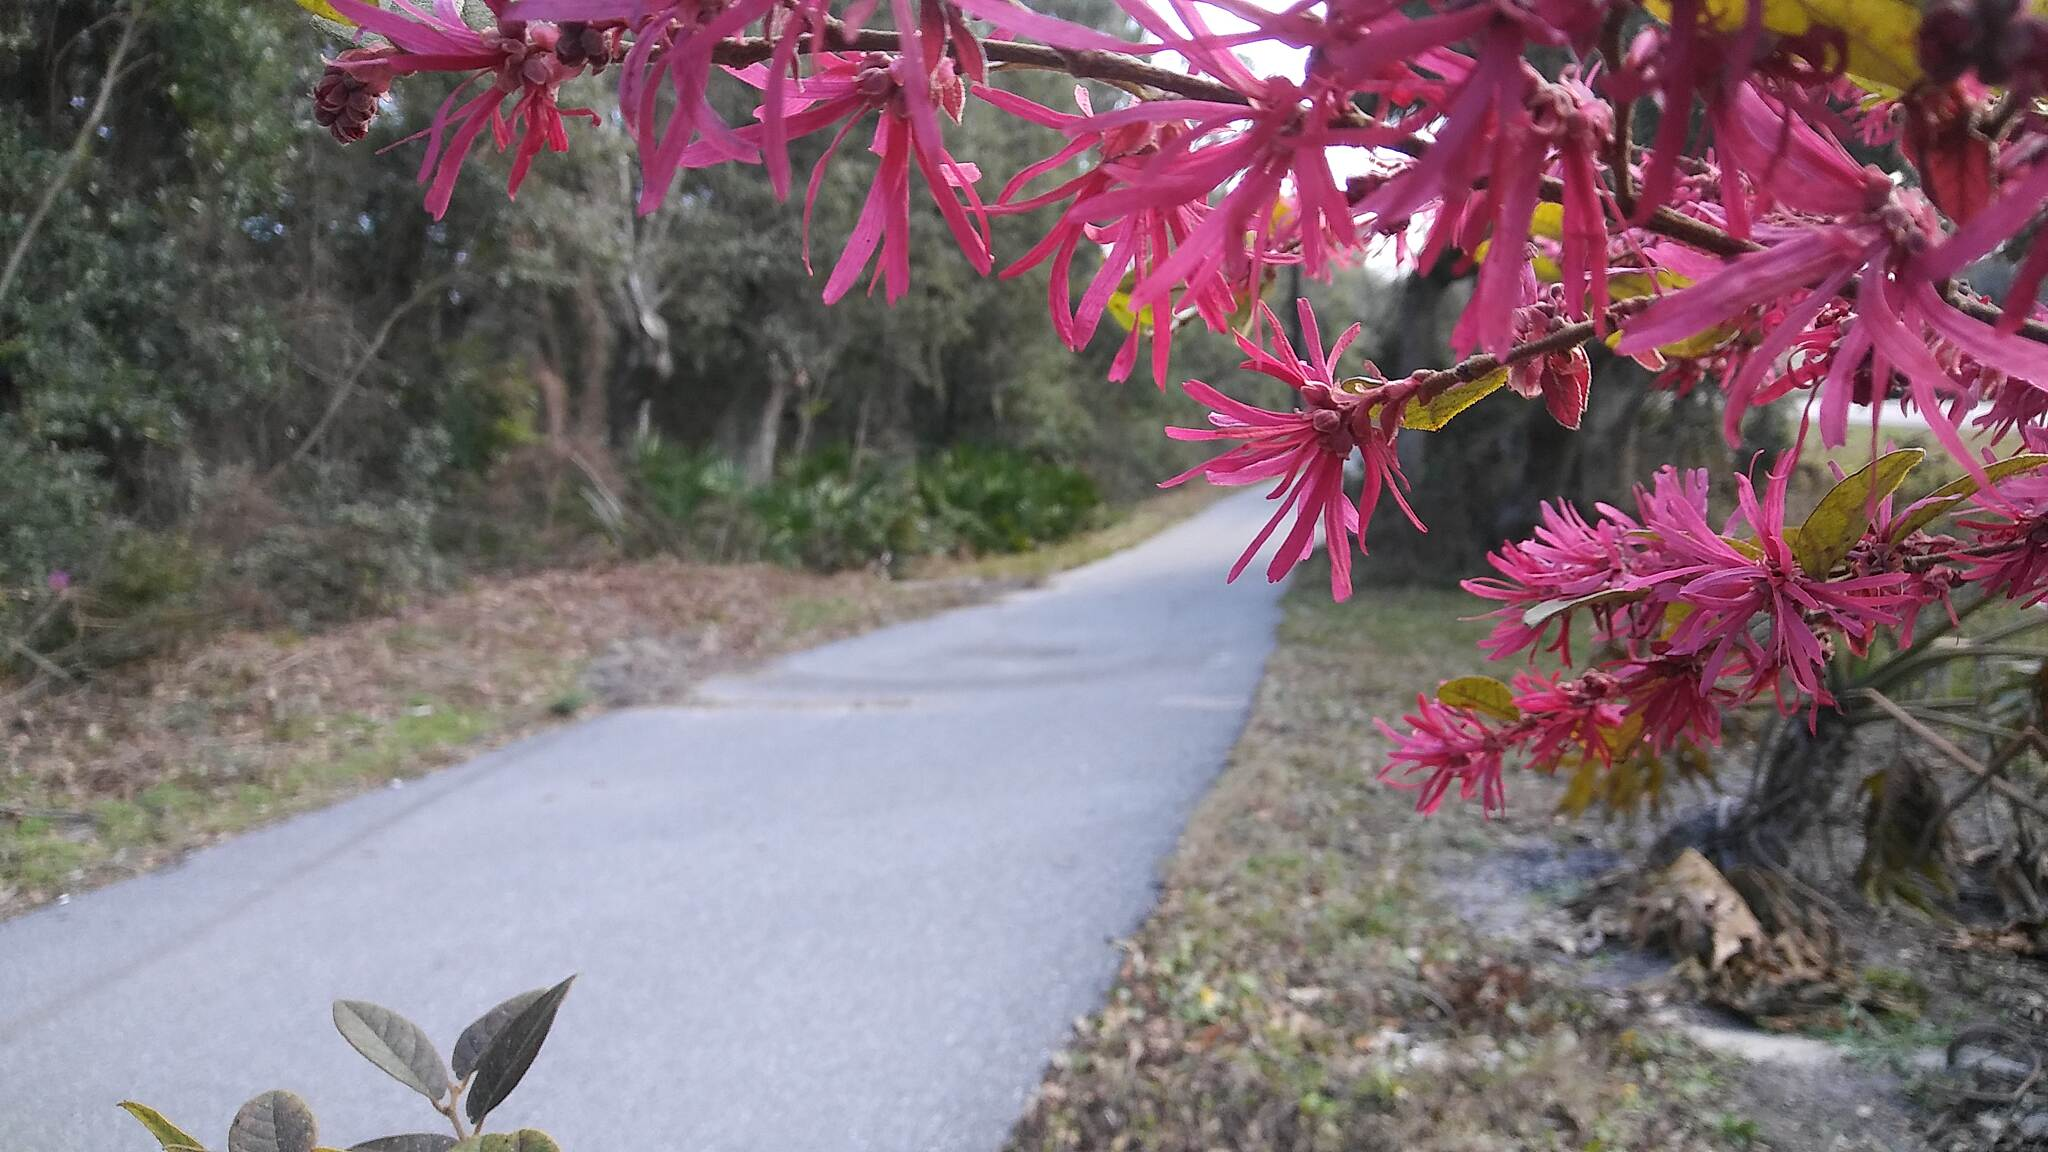 Amelia Island Trail Flowers in Spring Near the Sea Found these about 1 mile north of Amelia Trail State Park.